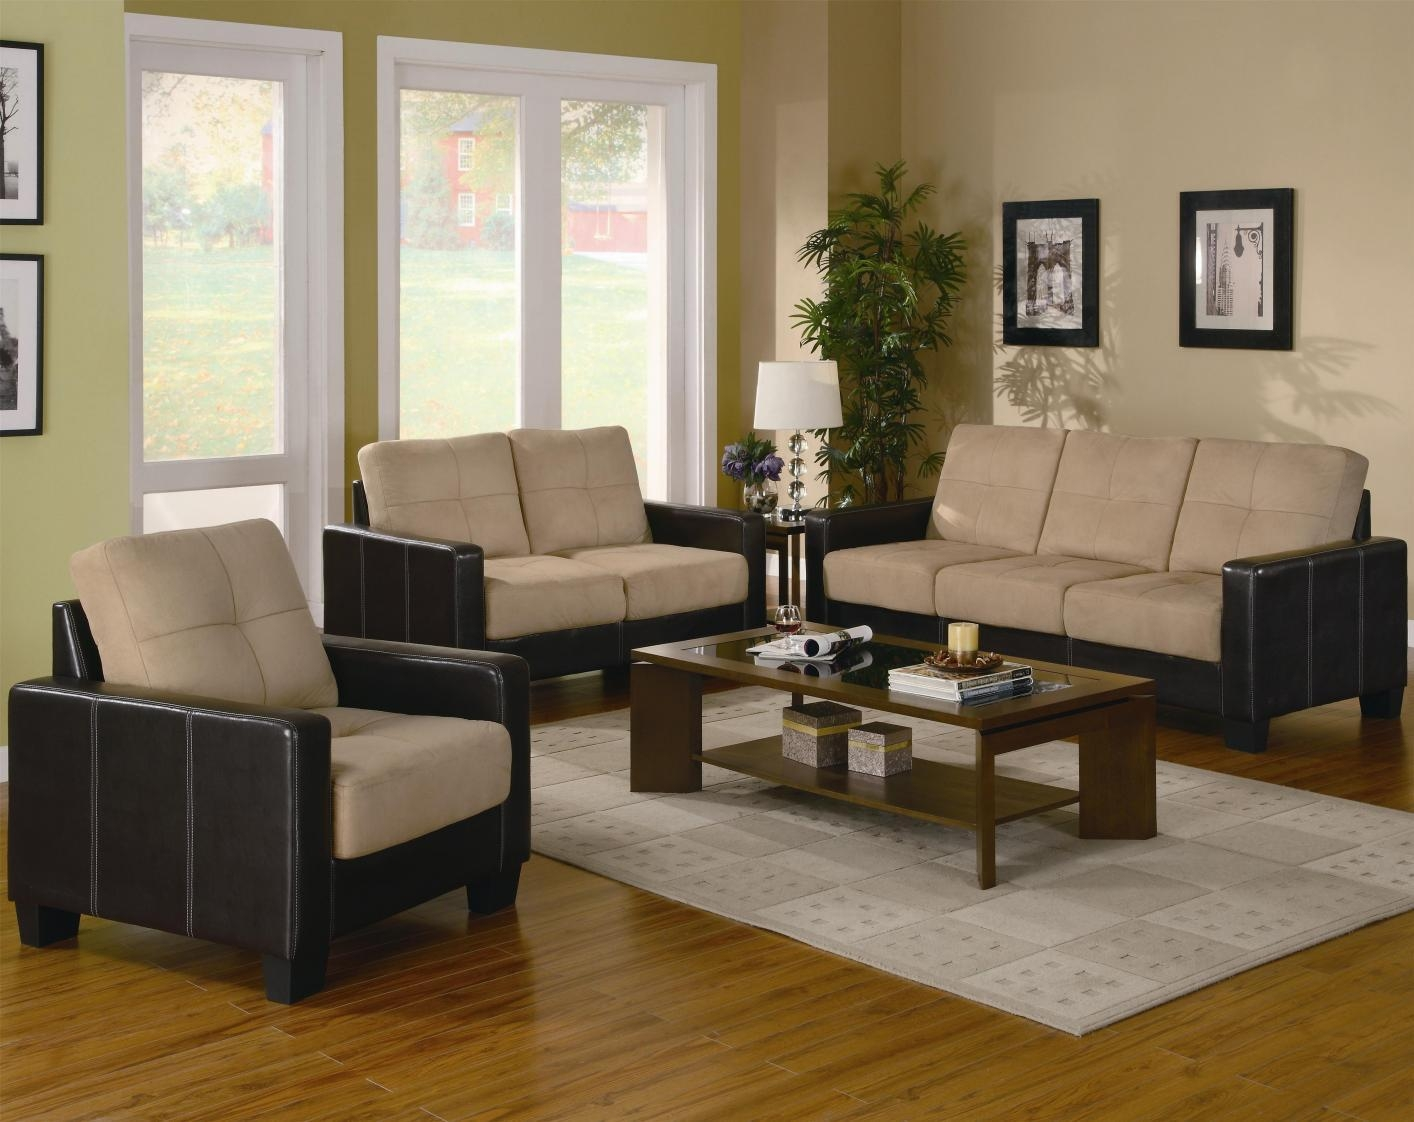 Beige Leather Sofa Loveseat And Chair Set – Steal A Sofa Furniture Intended For Sofa Loveseat And Chair Set (View 17 of 20)